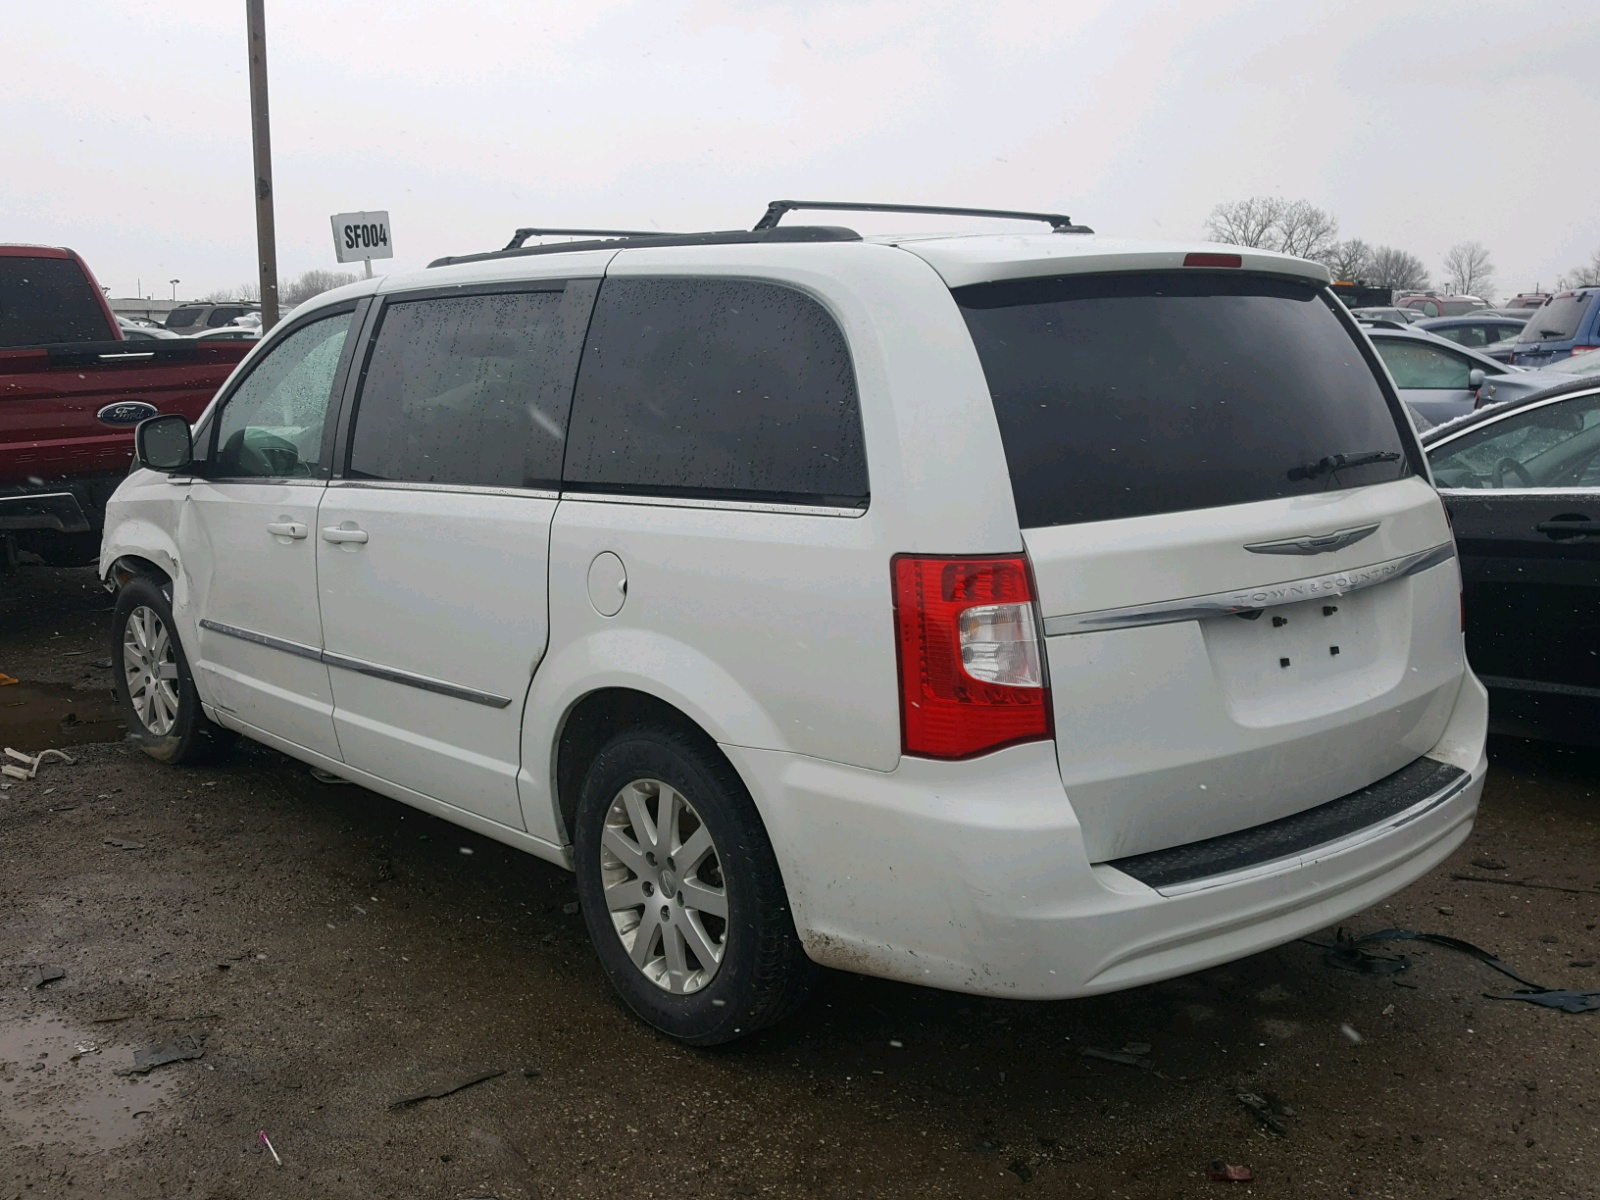 eldorado pics product sxt wheelchair amerivan service dodge caravan copy mileage touring billet town low vmi van country sales grand silver and chrysler l tc accessible